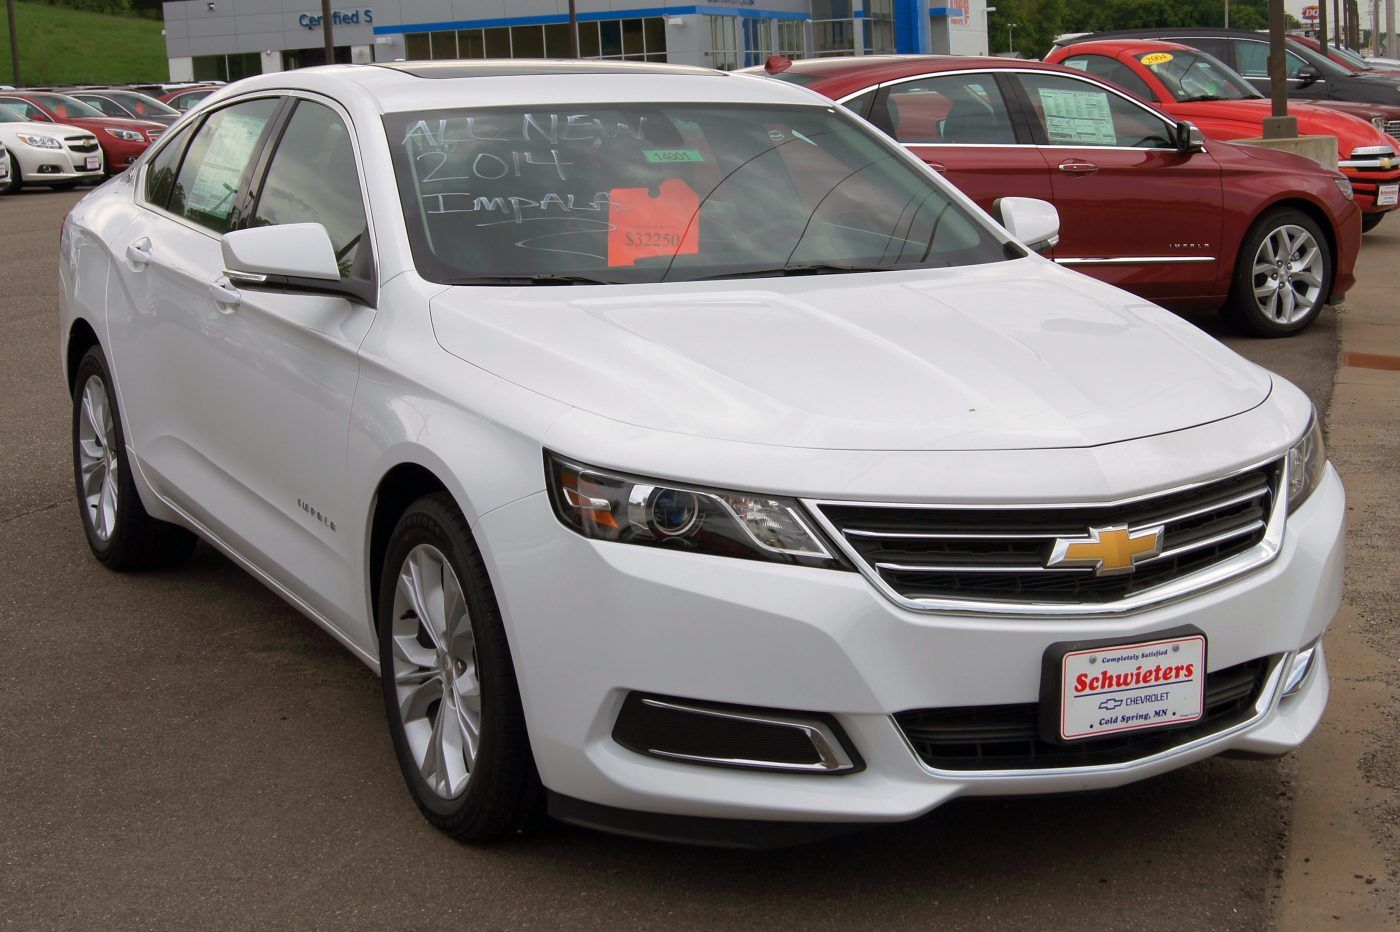 The New Impala Is The Car With A More Comfortable Riding And Seat The Exterior Style Is Extremely Emotional An Chevy Impala Chevrolet Impala 2014 Chevy Impala